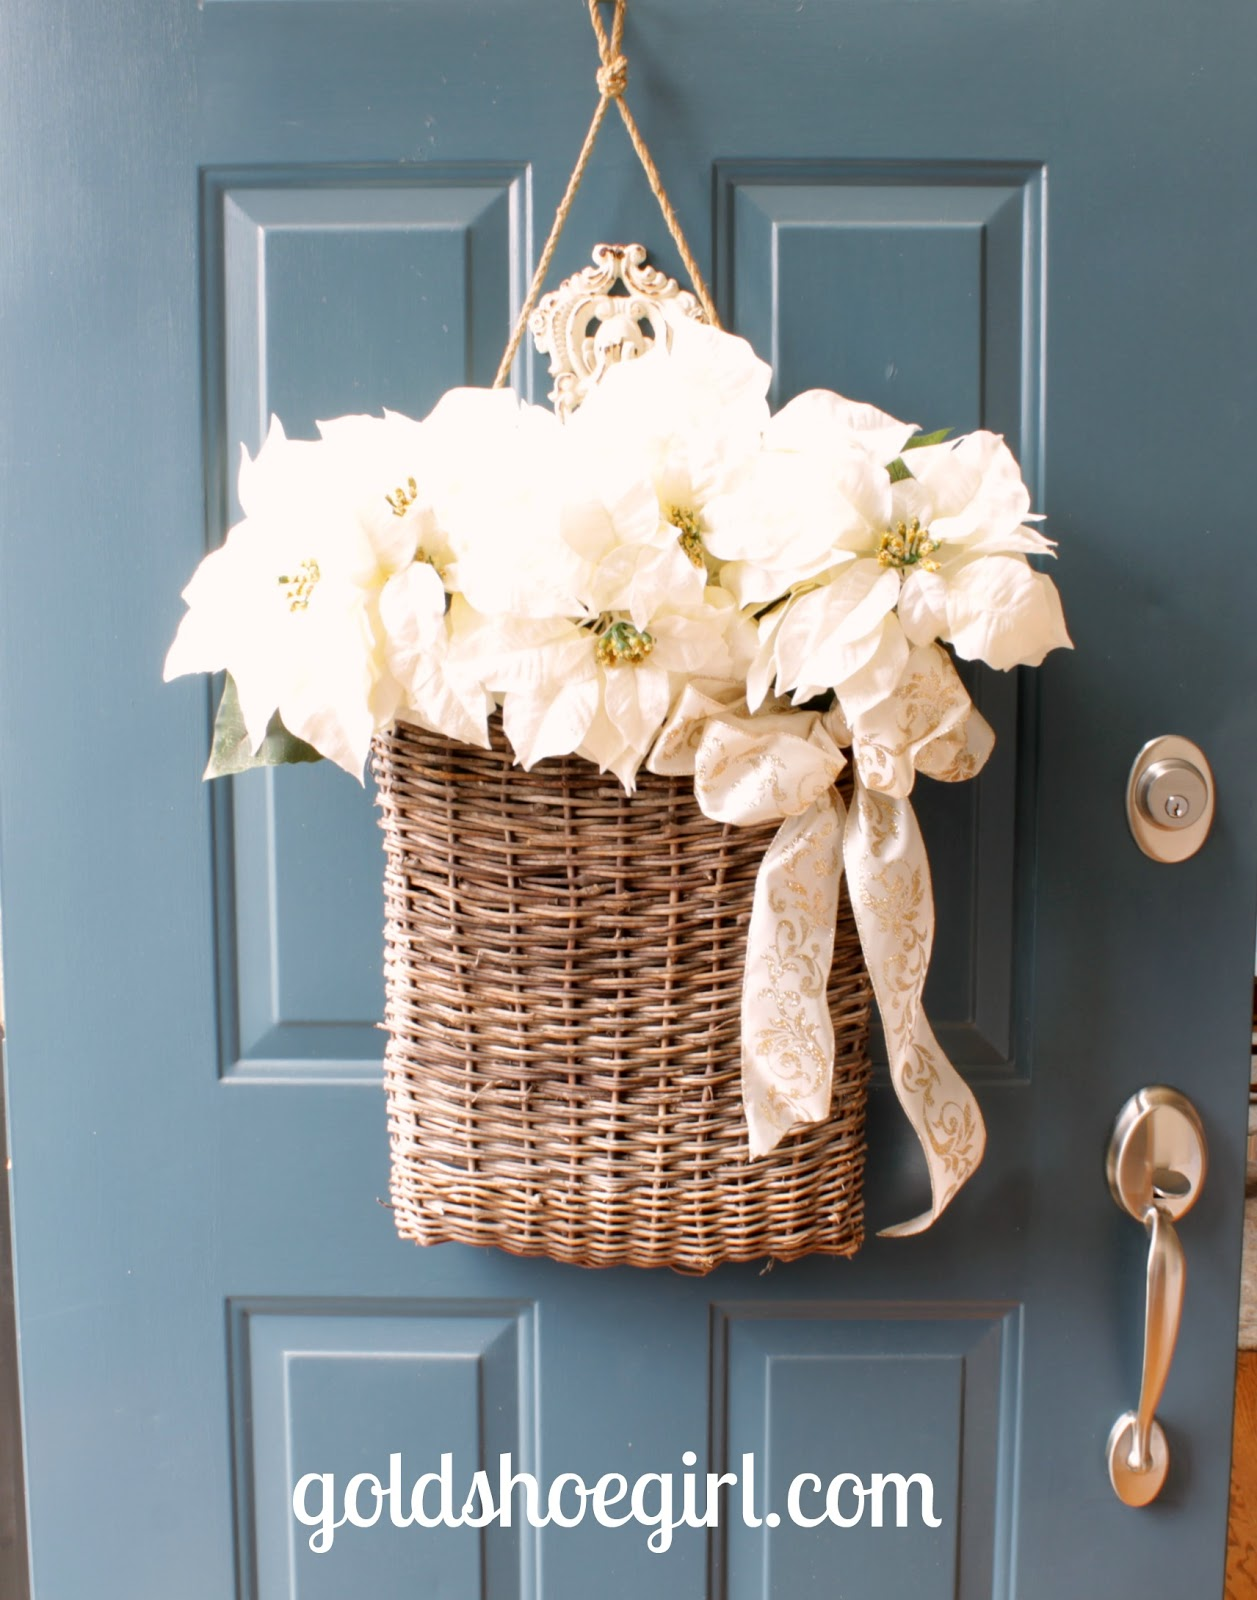 We already had the basket so the flowers and bow ran less than $15 at Joann\u0027s. Not too bad especially when all the wreathes I liked were 3 times that much. & Gold Shoe Girl: Winter Holiday Front Door Basket